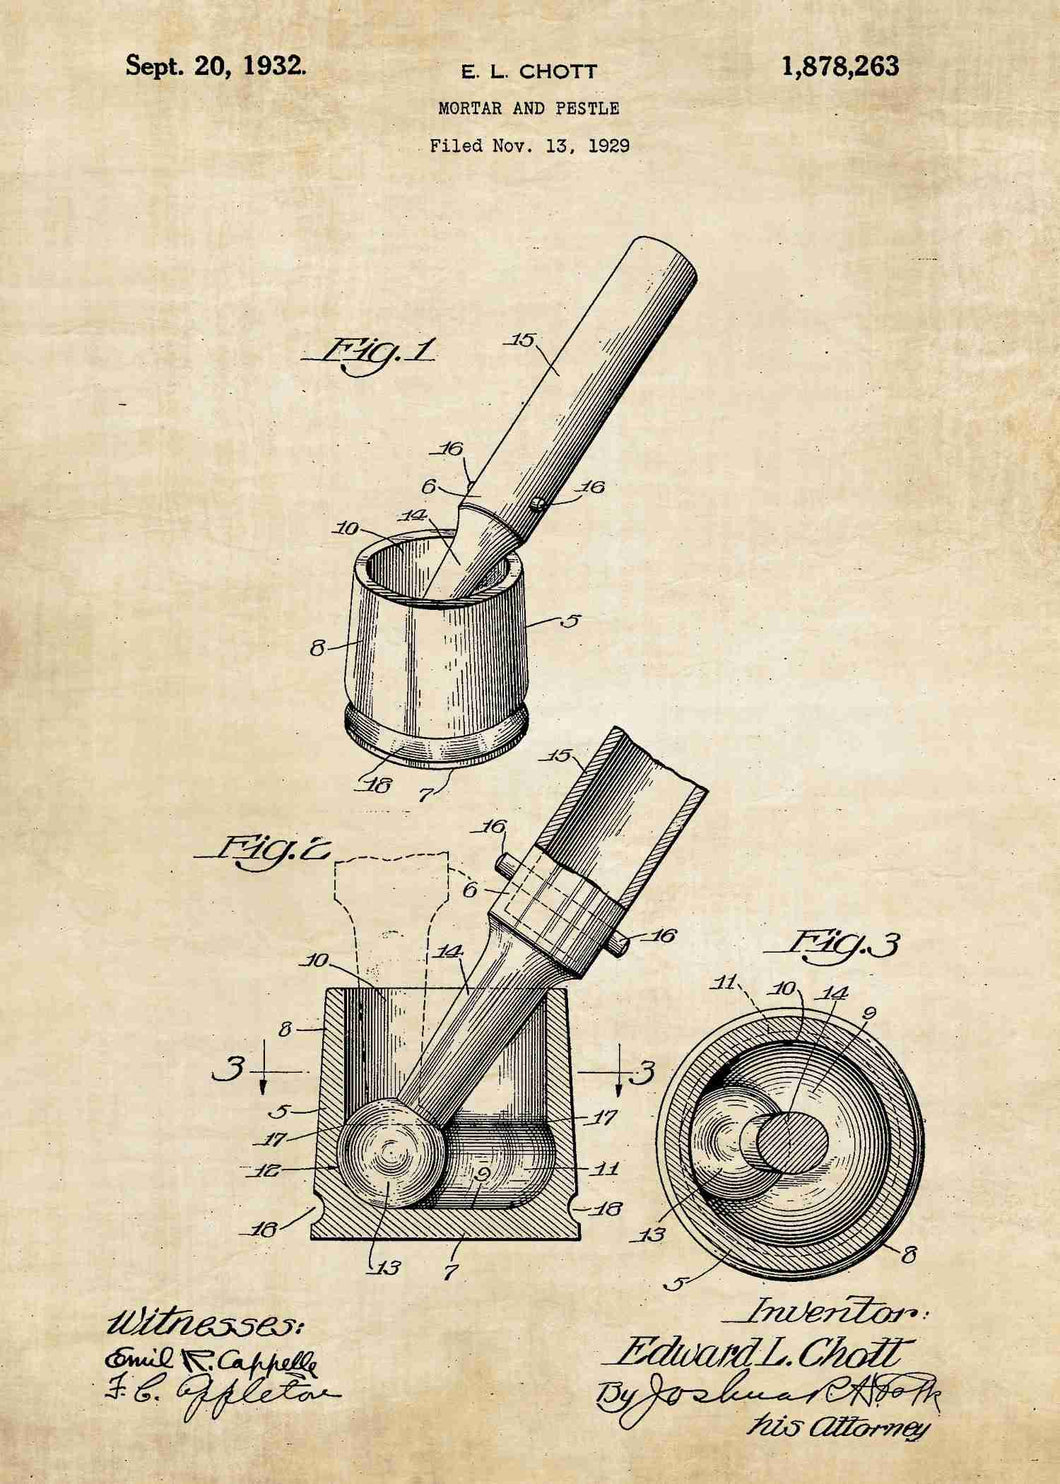 mortar and pestle patent print, mortar and pestle kitchen poster in the style vintage